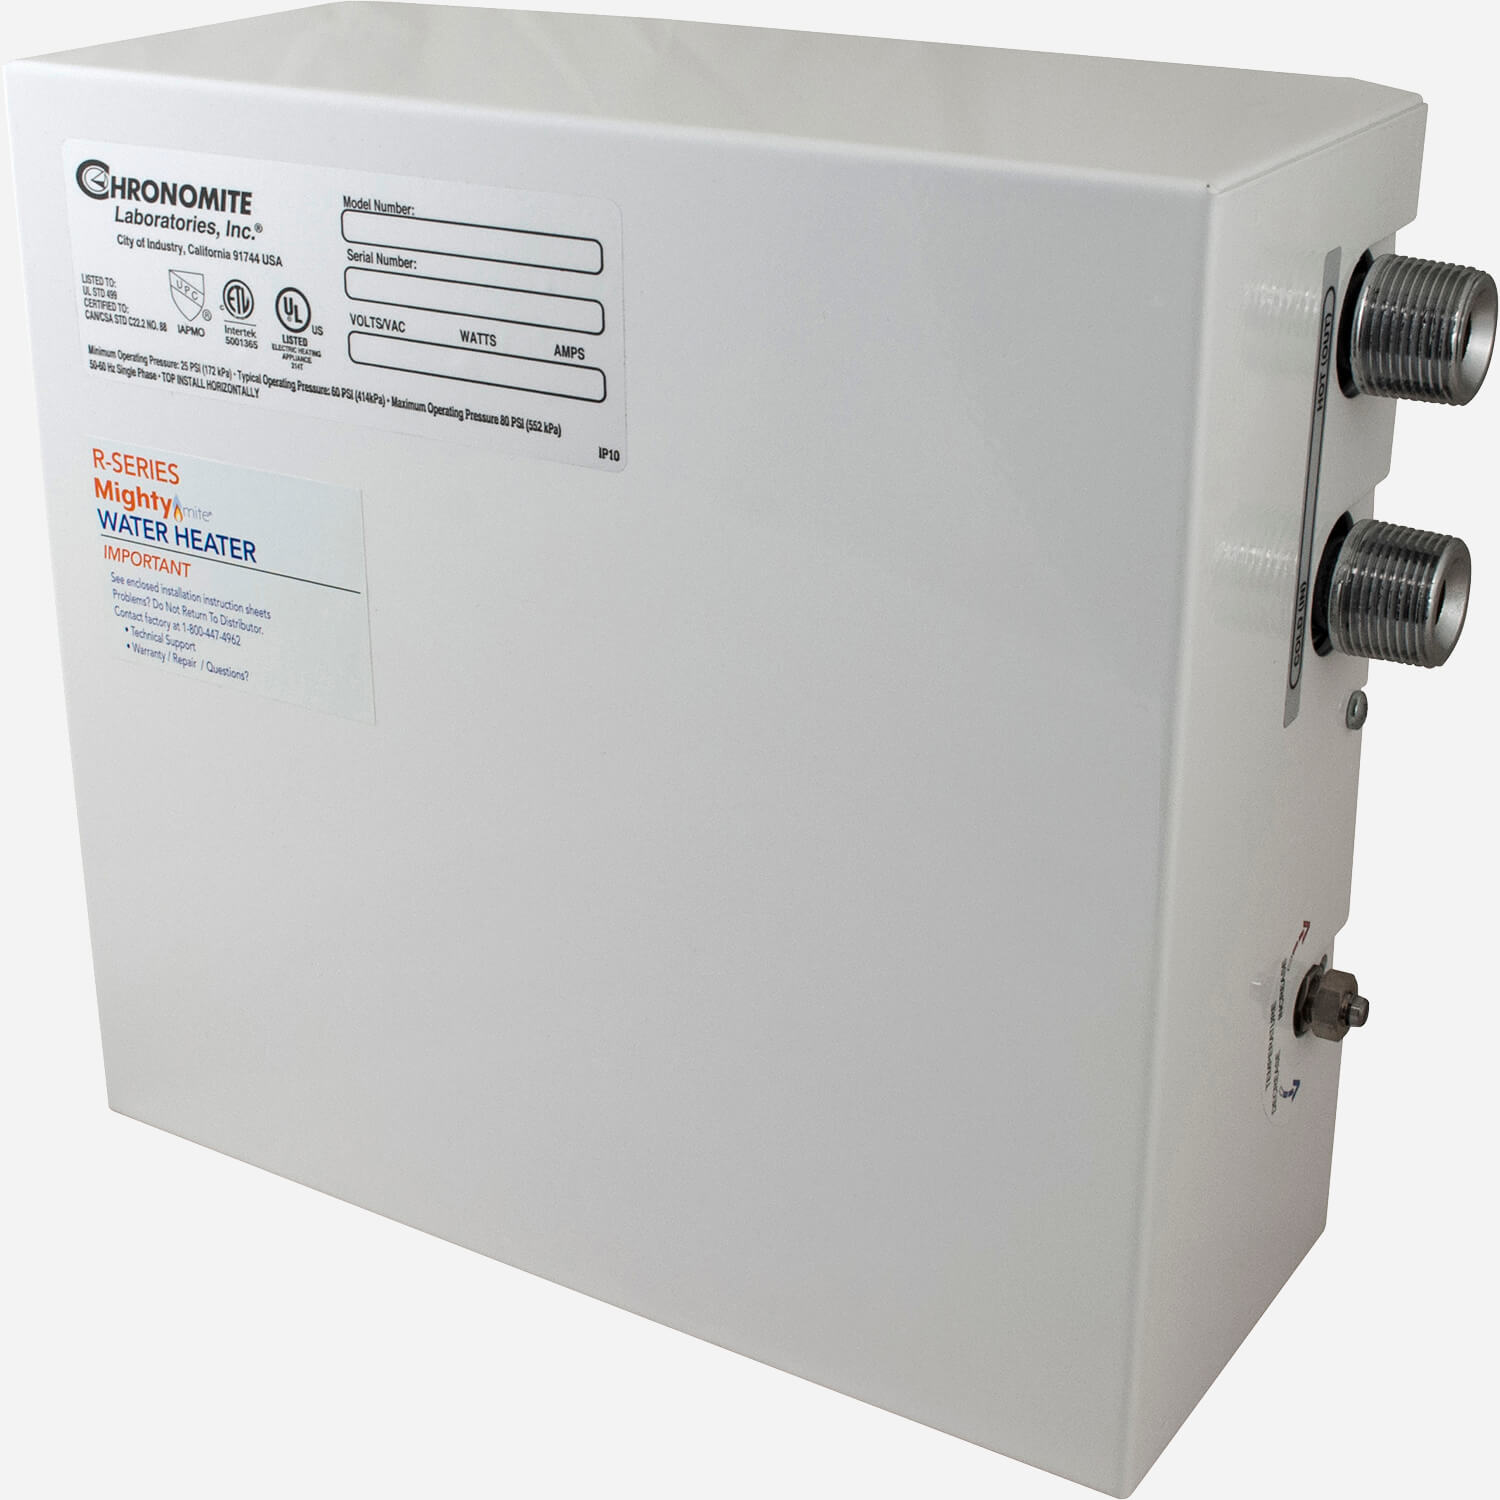 MIGHTY-mite® Single Phase Large Capacity Tankless Water Heater